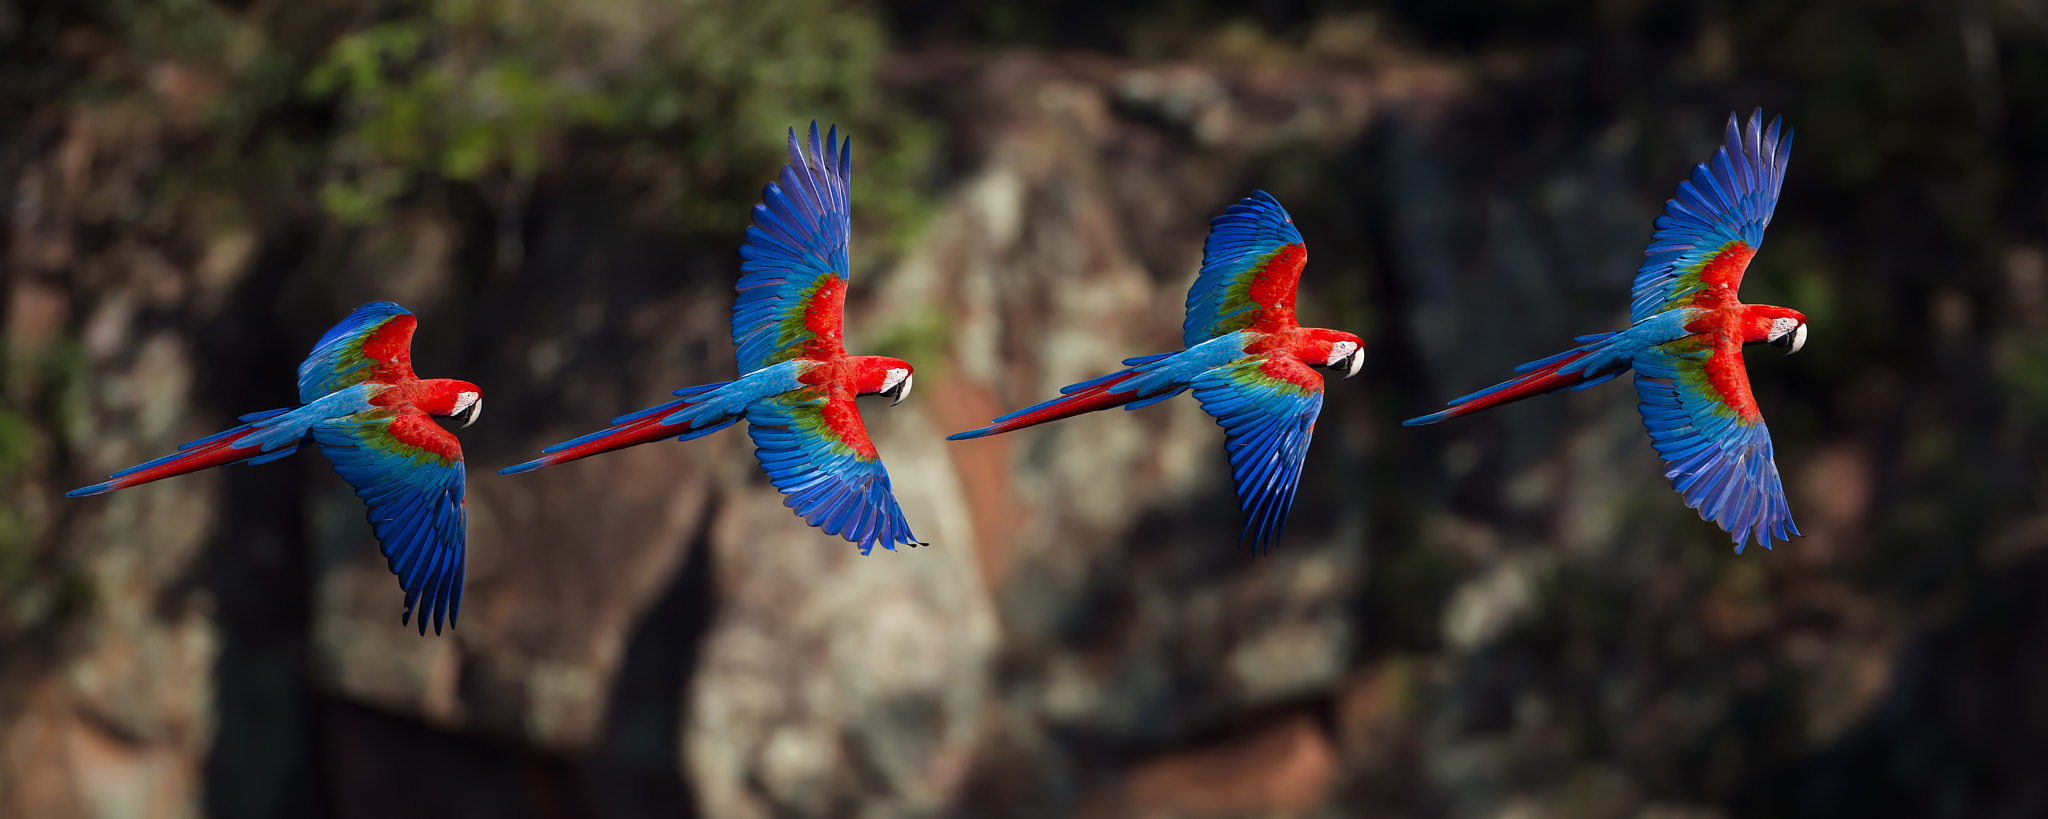 Photograph Red-and-green macaw by Patrick Meier on 500px